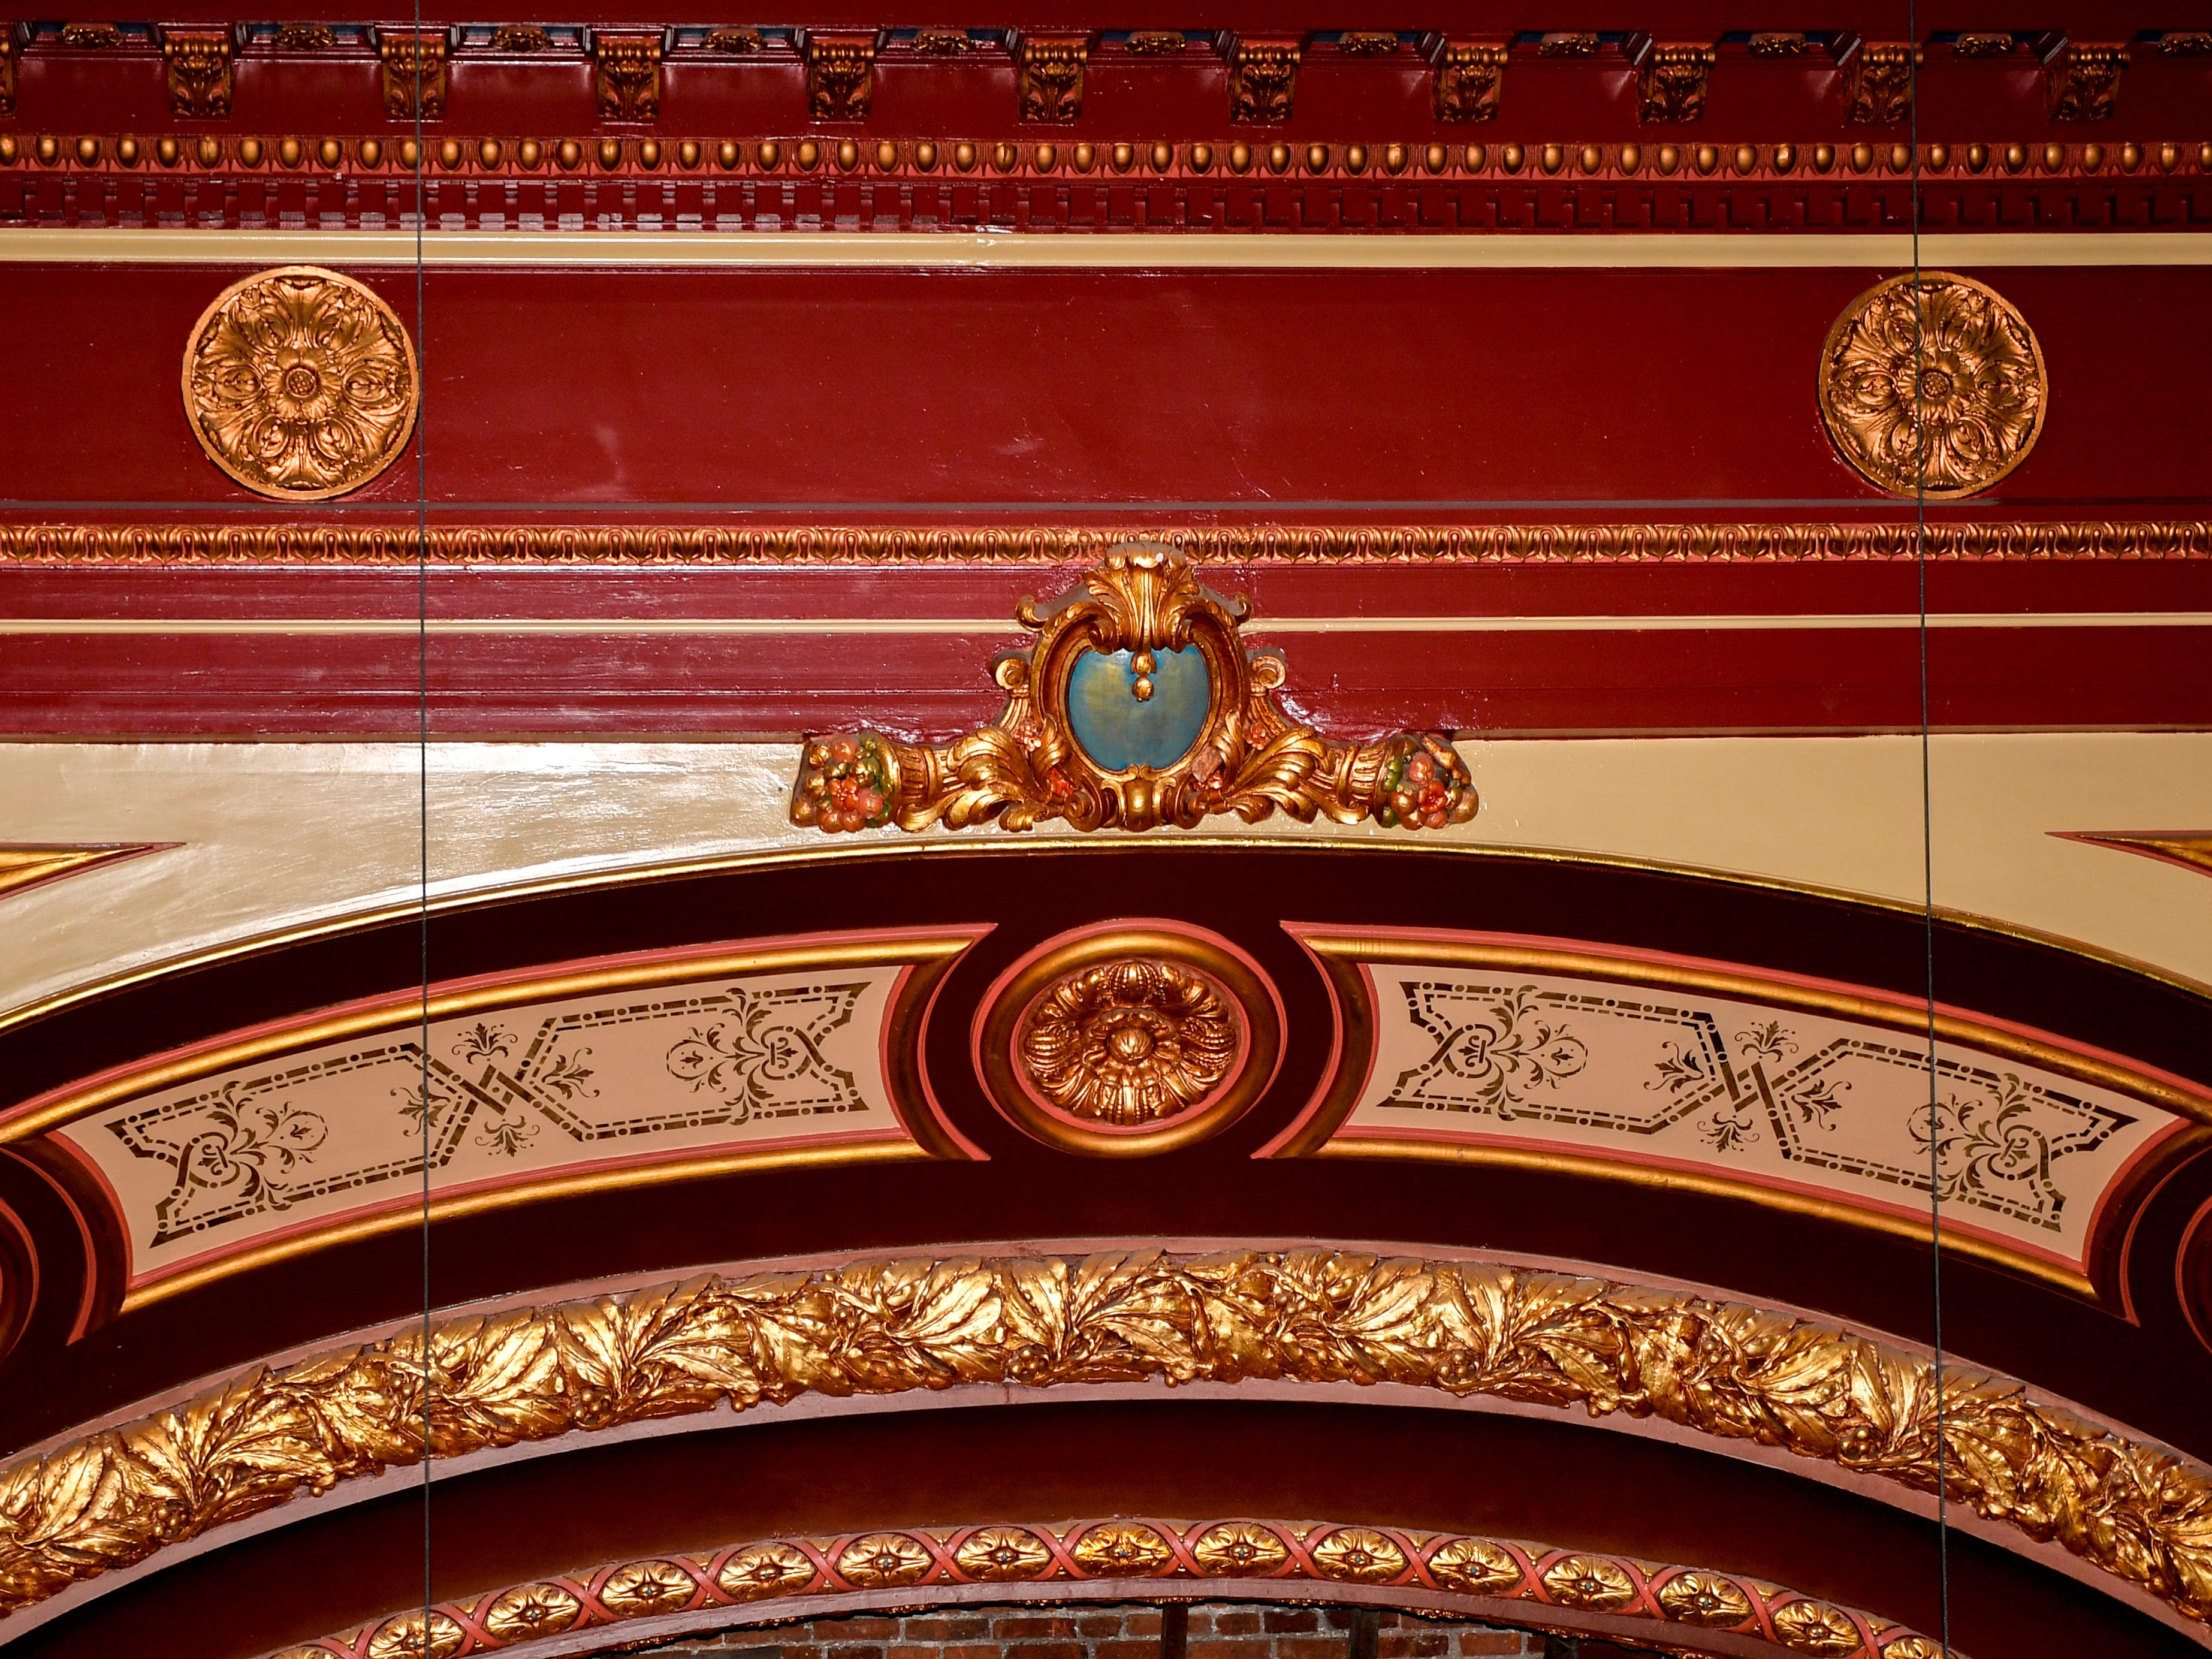 Parts of the Capitol Theatre that were uncovered in the renovation process have been restored to look brand new.